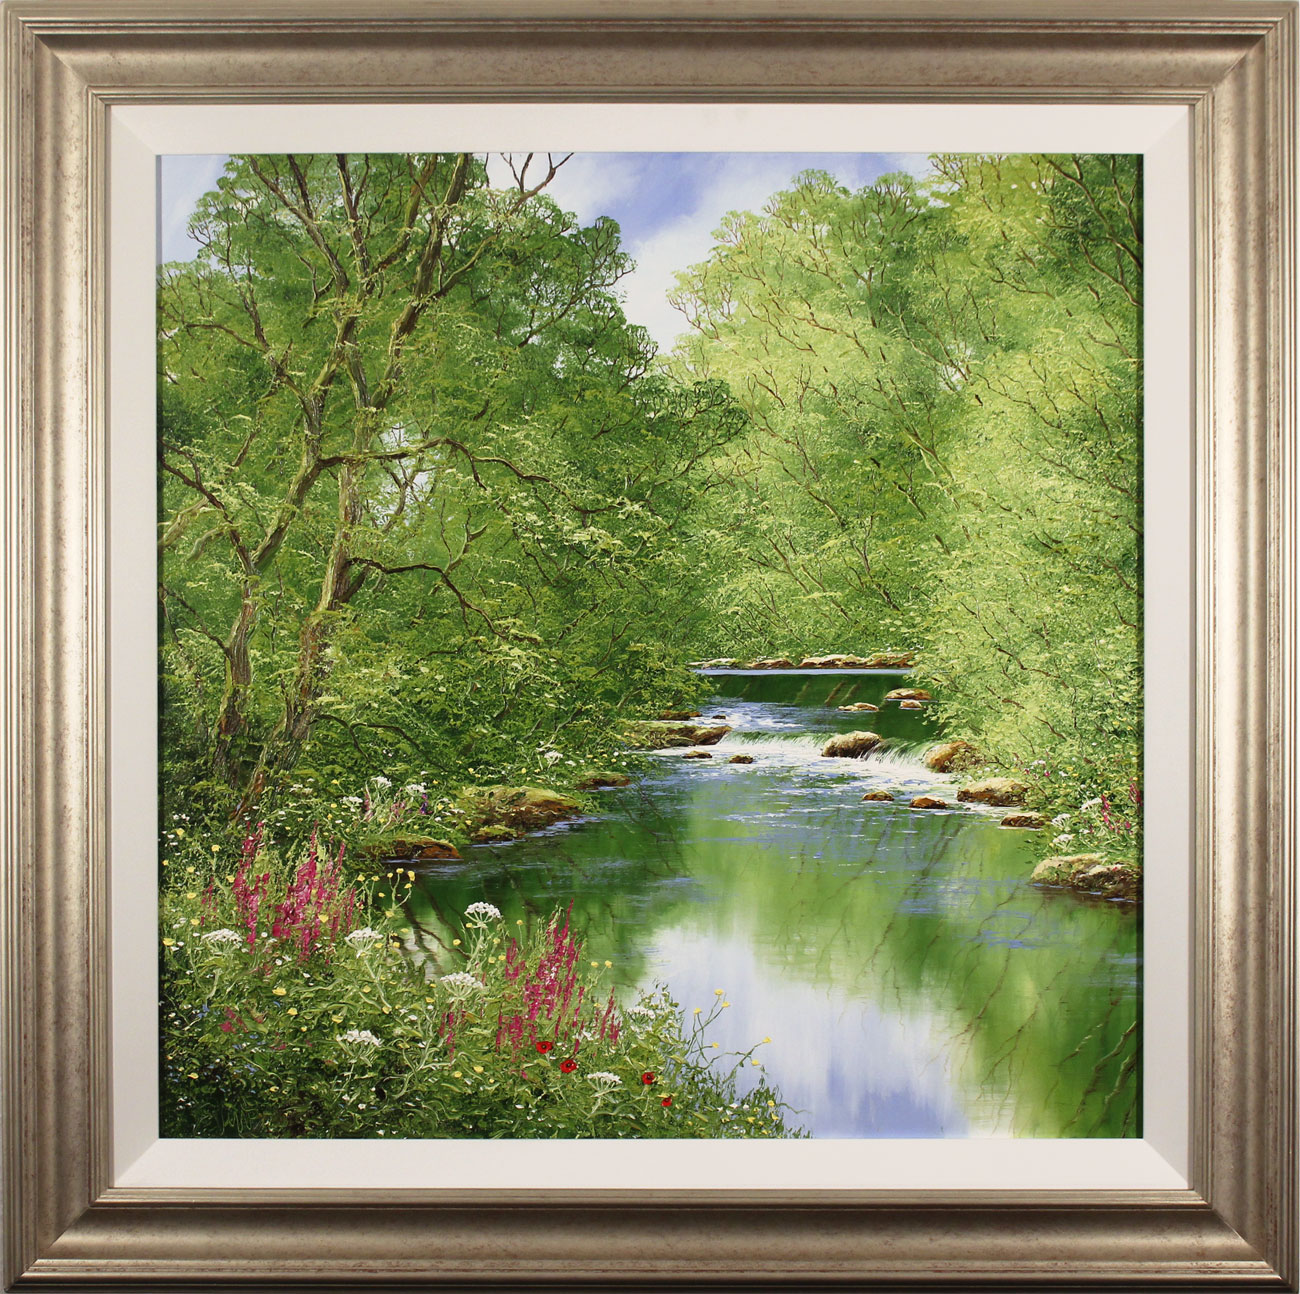 Terry Evans, Original oil painting on canvas, Quiet of the Wood. Click to enlarge